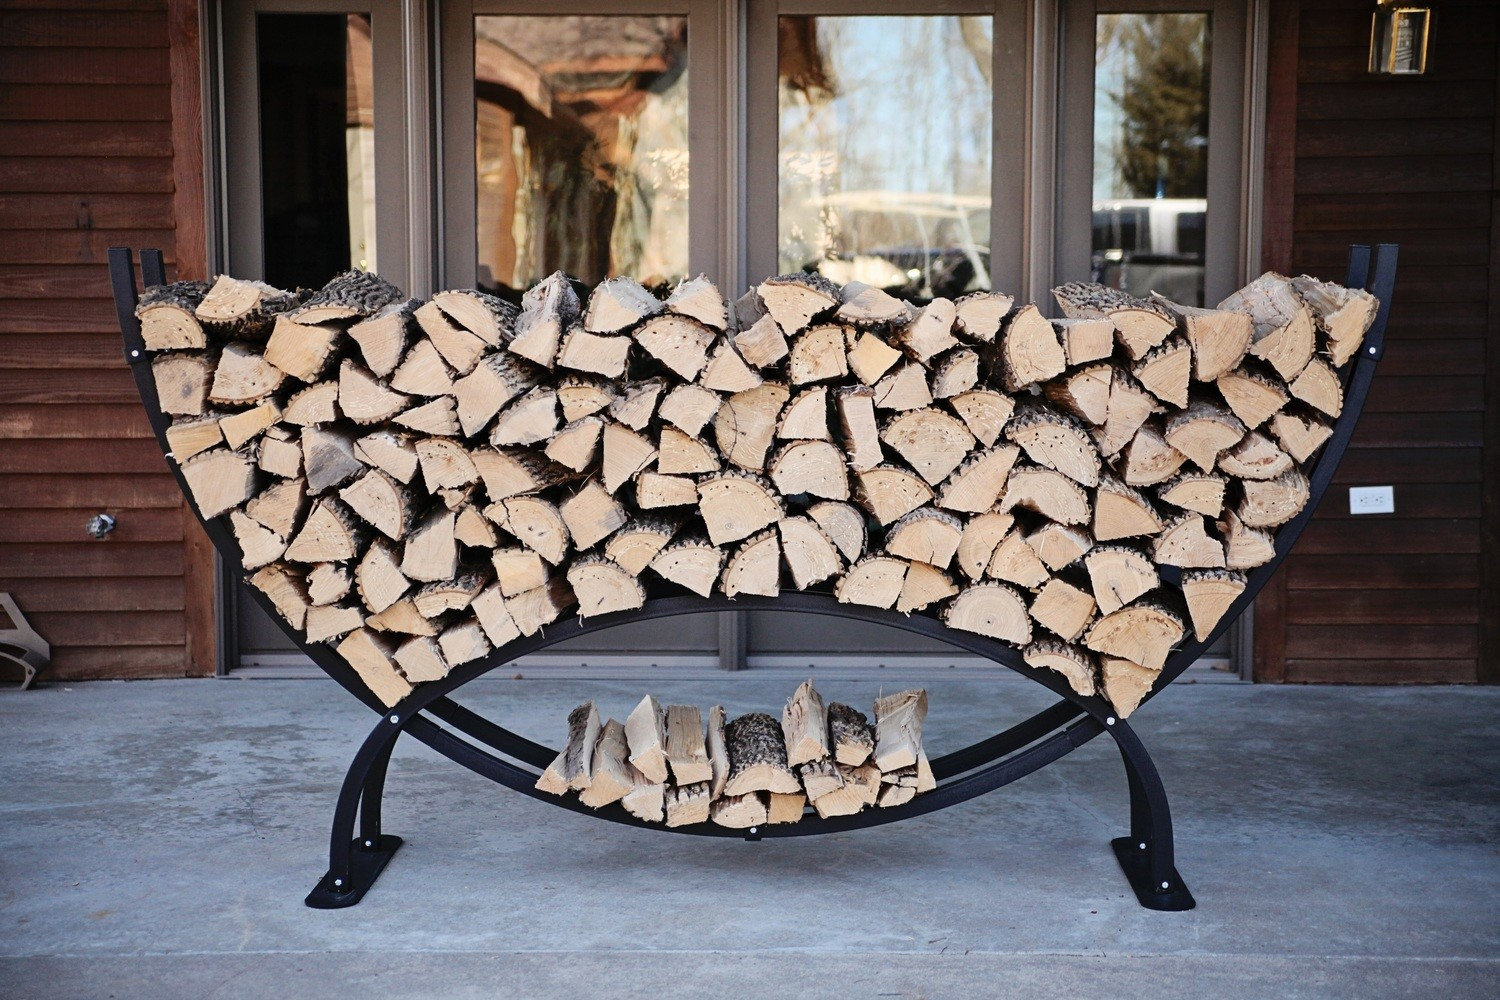 The Woodhaven 8ft Crescent Rack